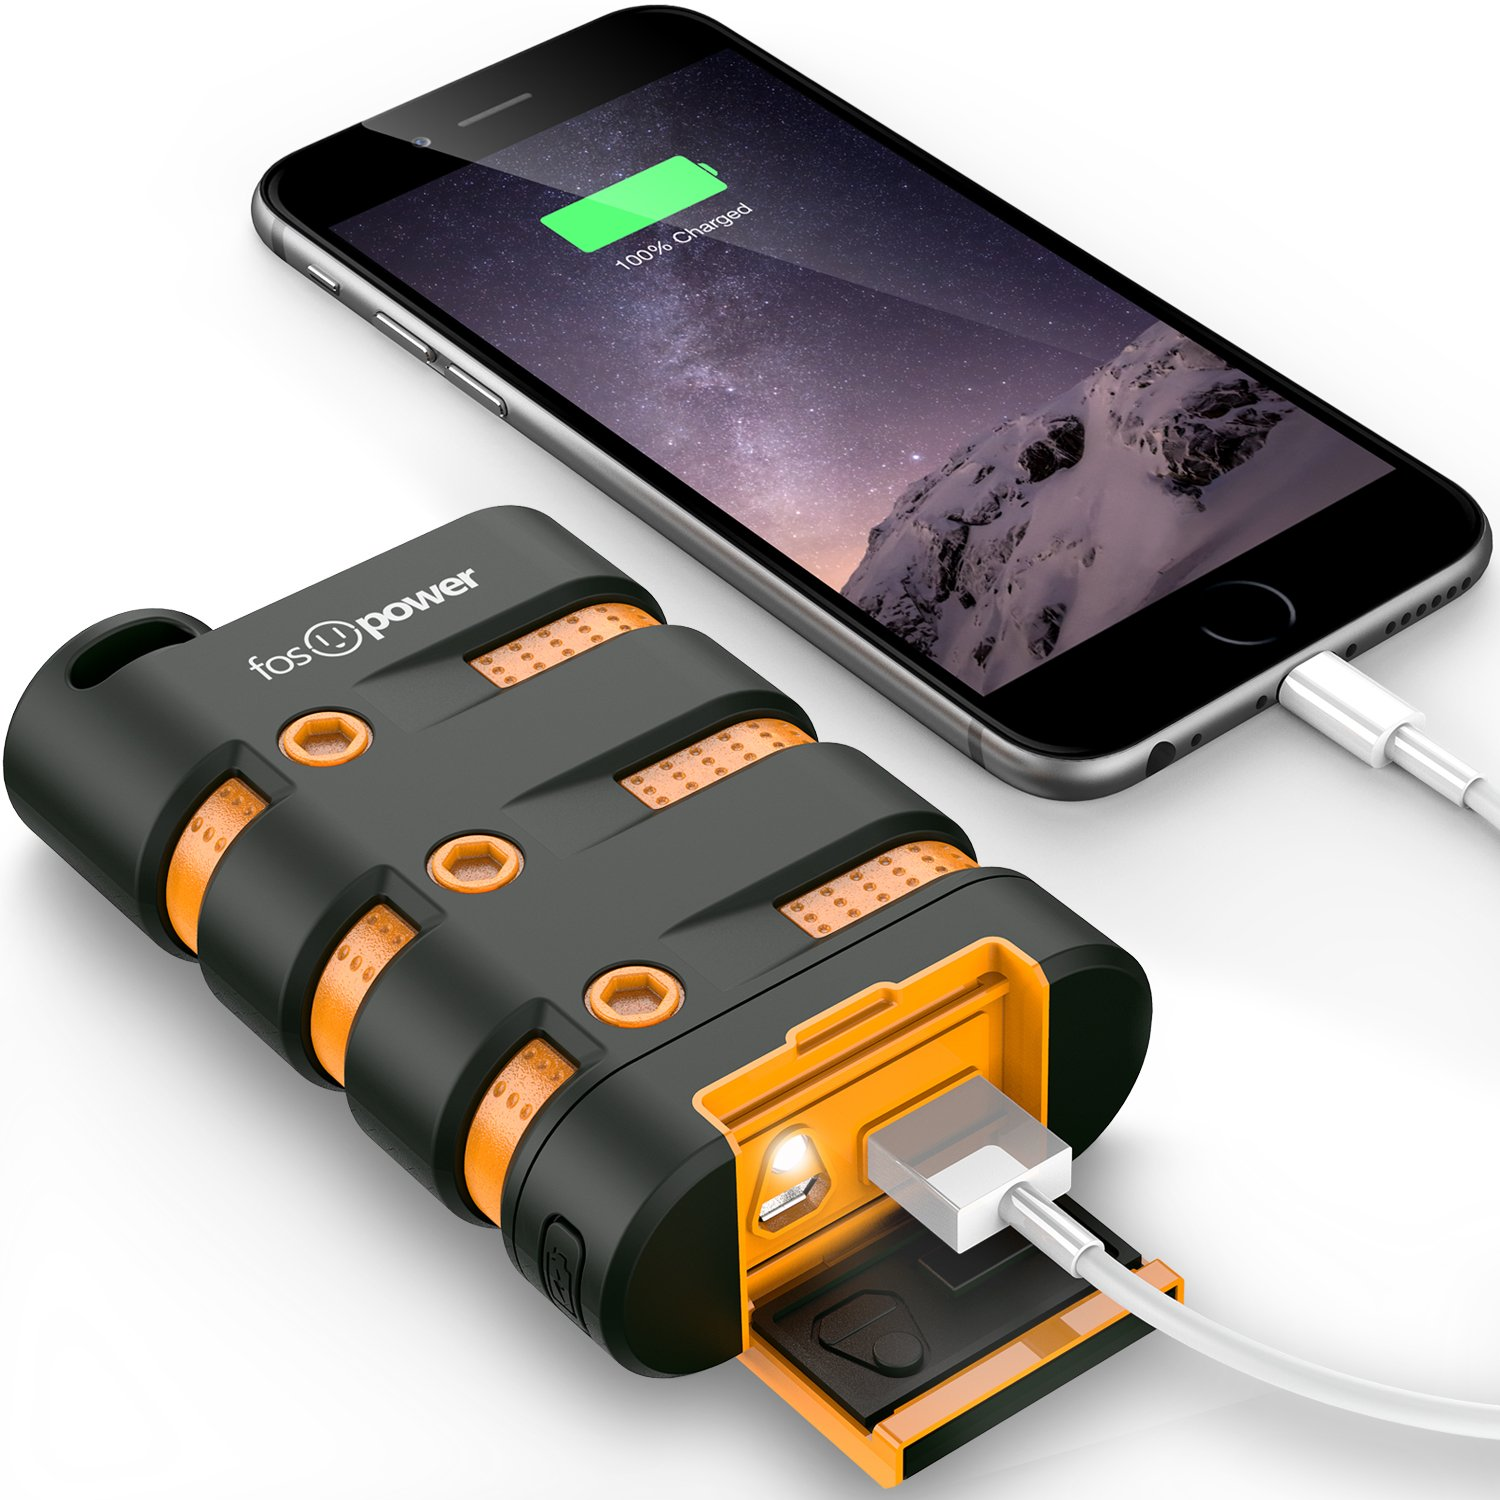 5 Best Portable Battery Charger In 2018 For Your Android Phone Hp The Device Has Two Usb Charging Ports And A Handy Led Light Helping You Connect To Car At Night